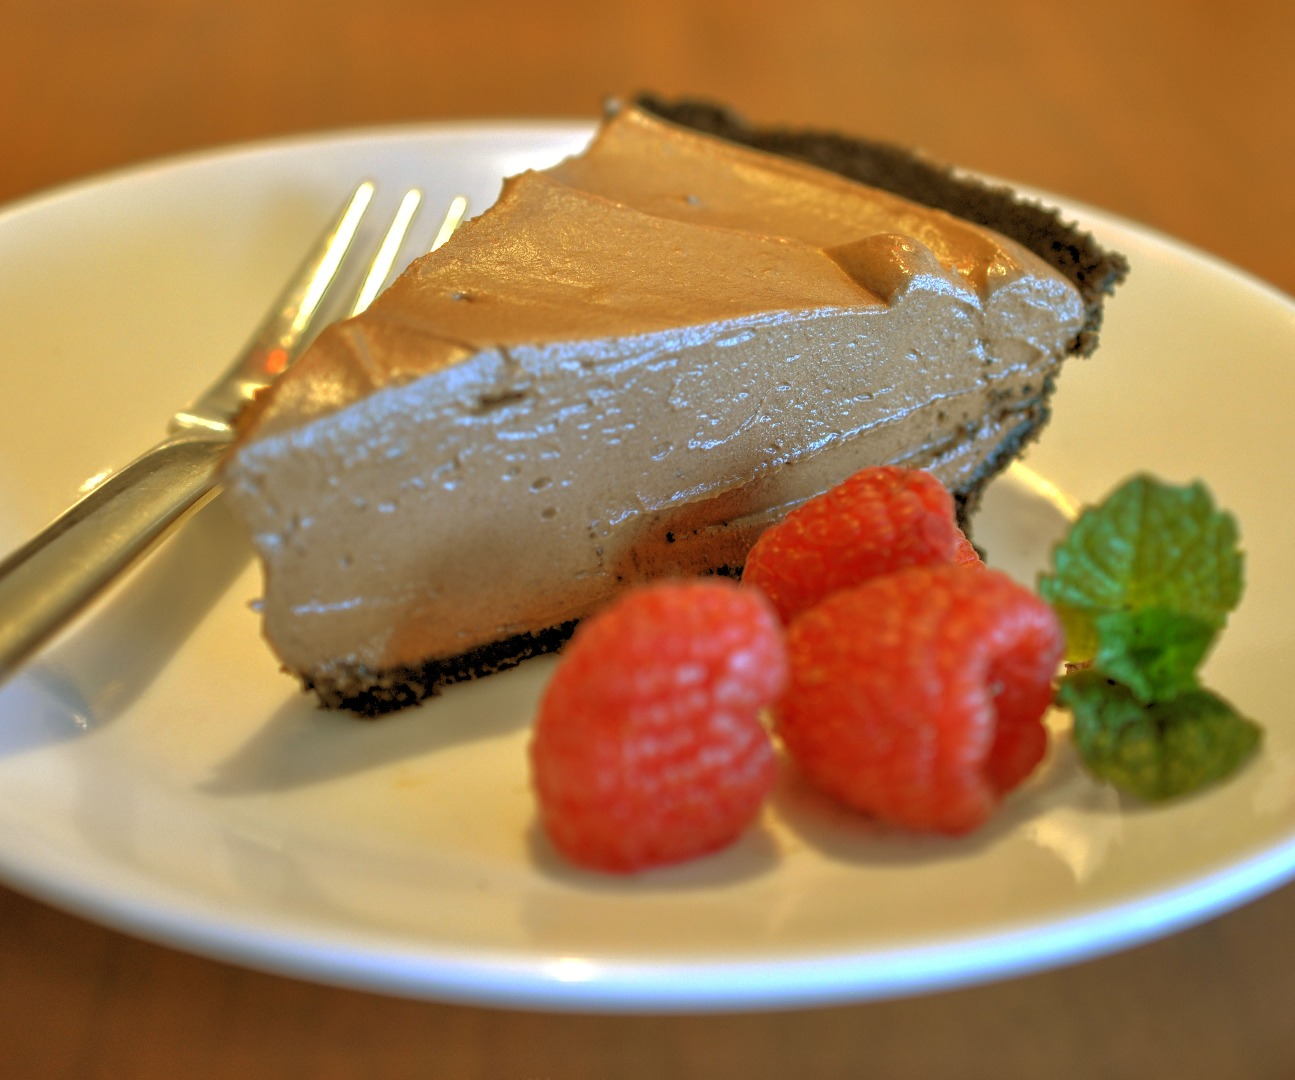 Picture of Pie or Mousse?